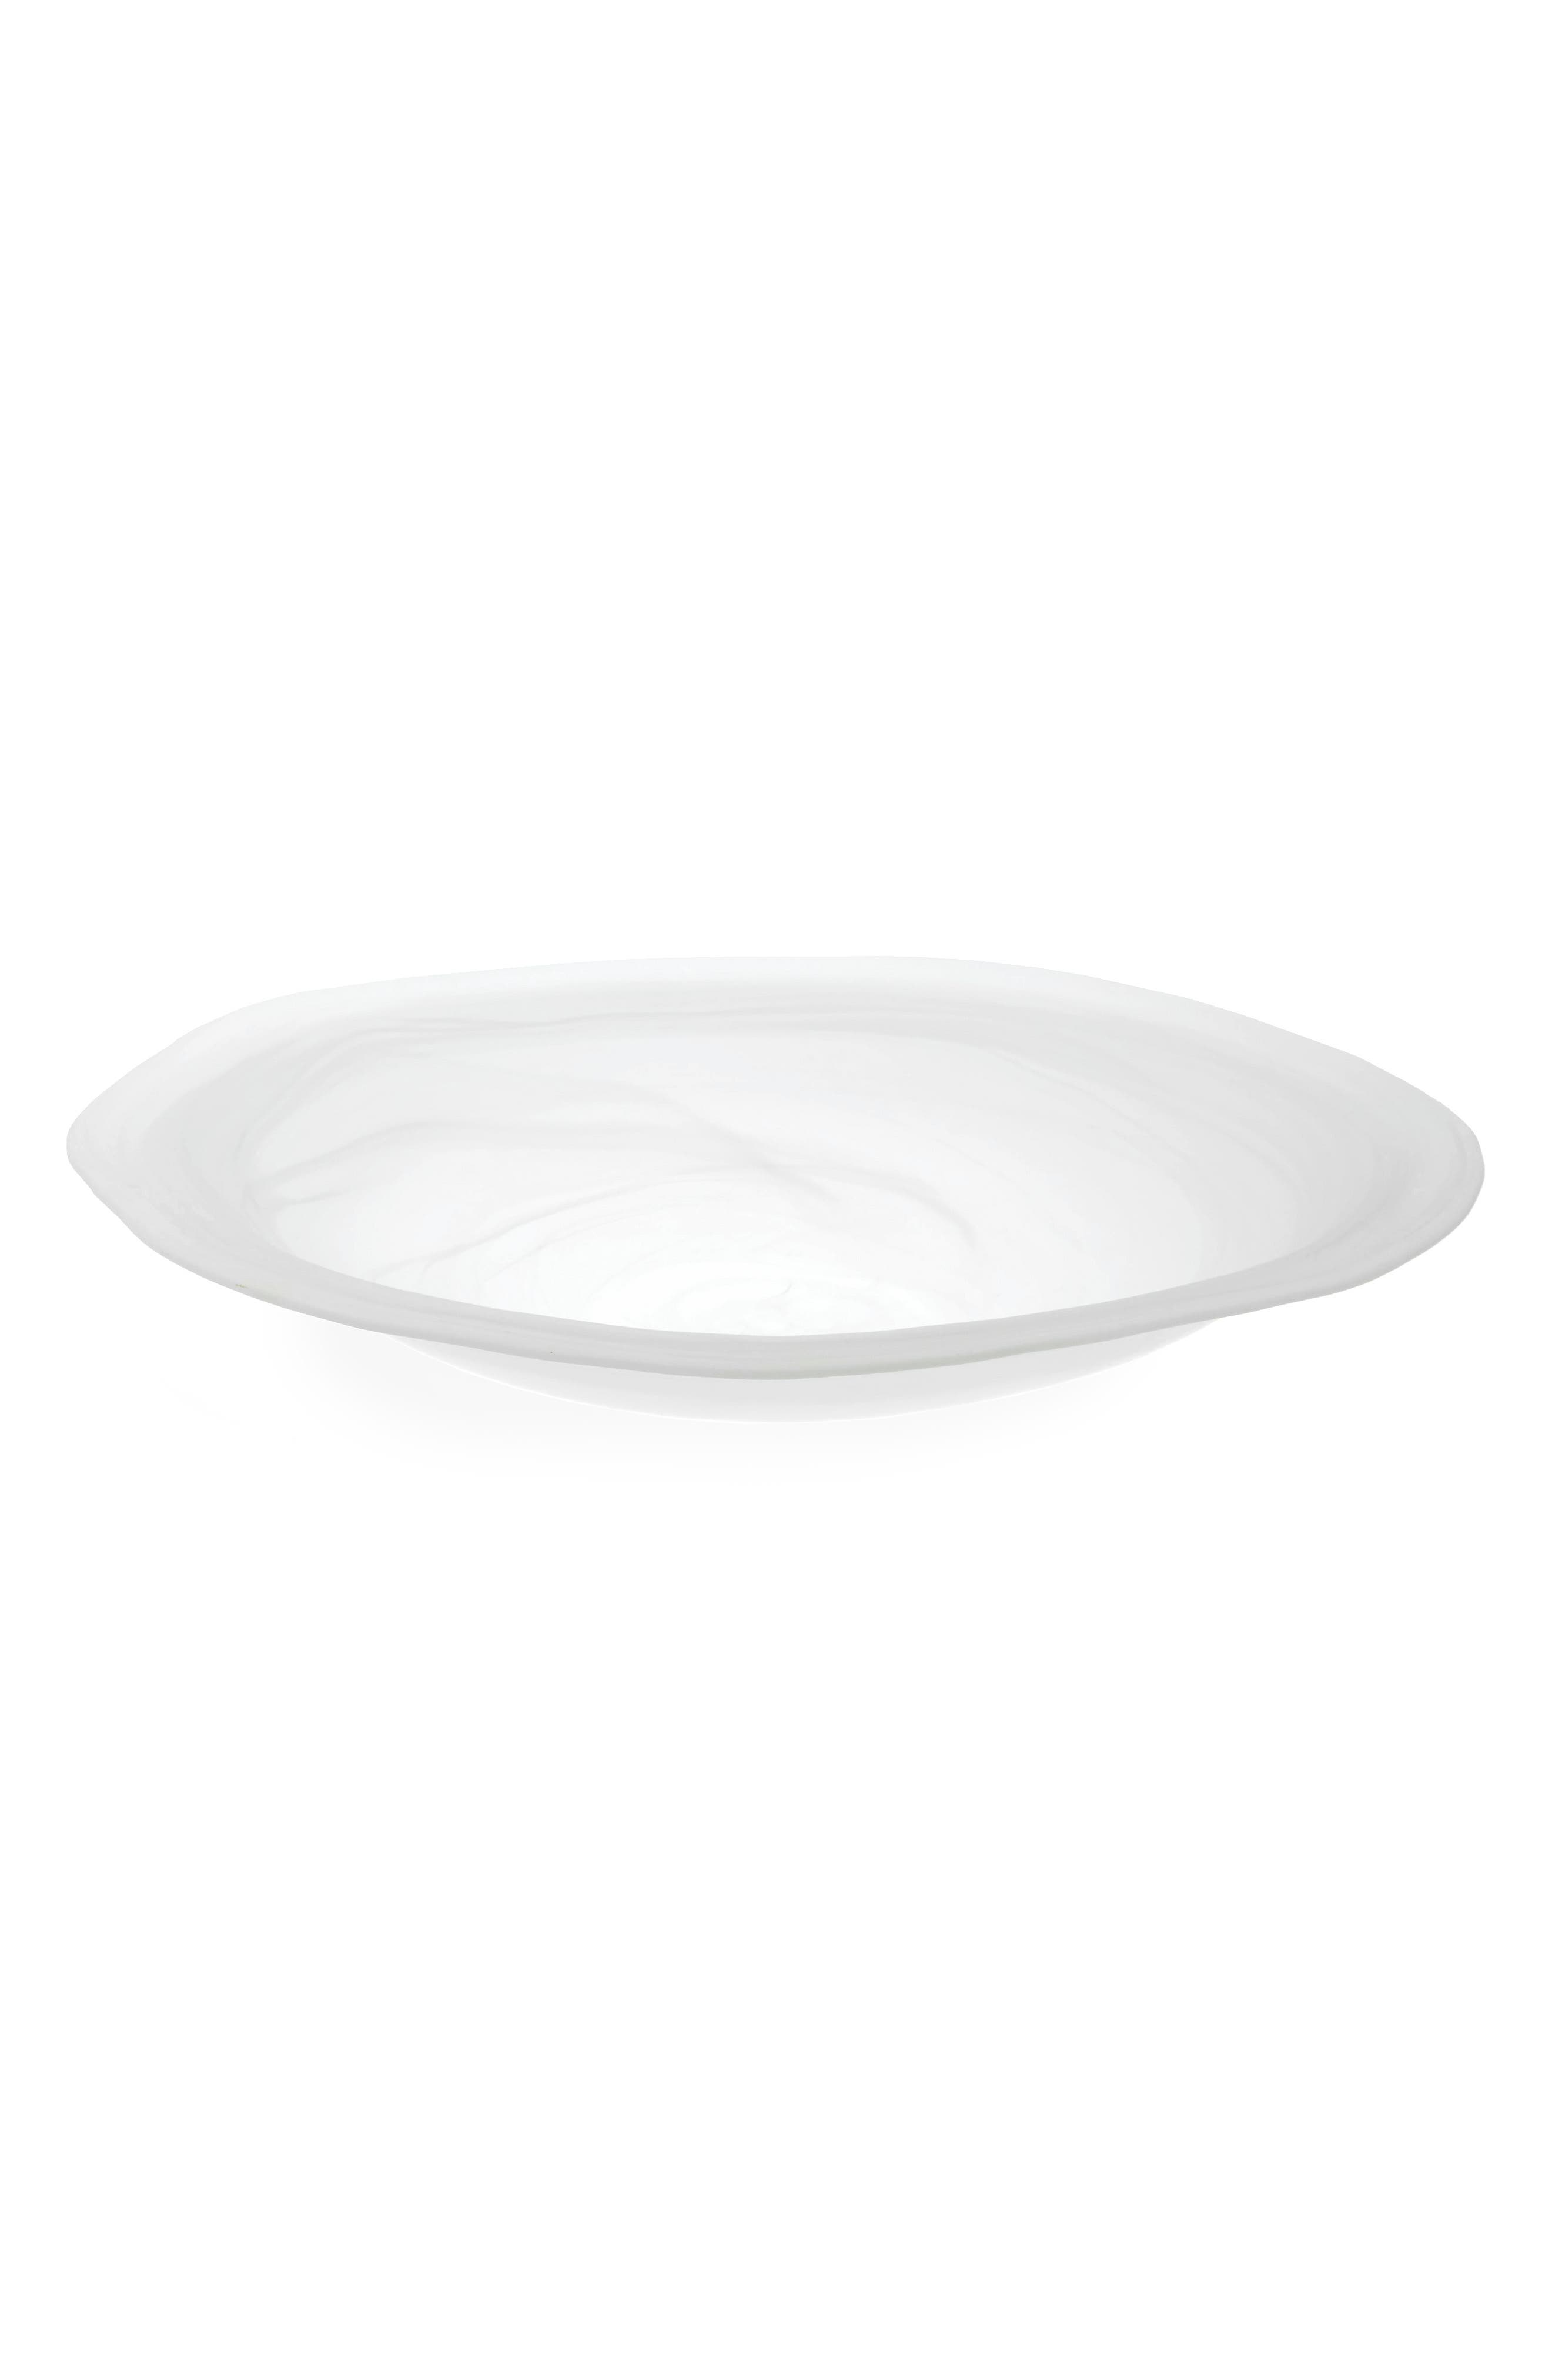 Frosted Alabaster Glass Platter,                             Main thumbnail 1, color,                             White